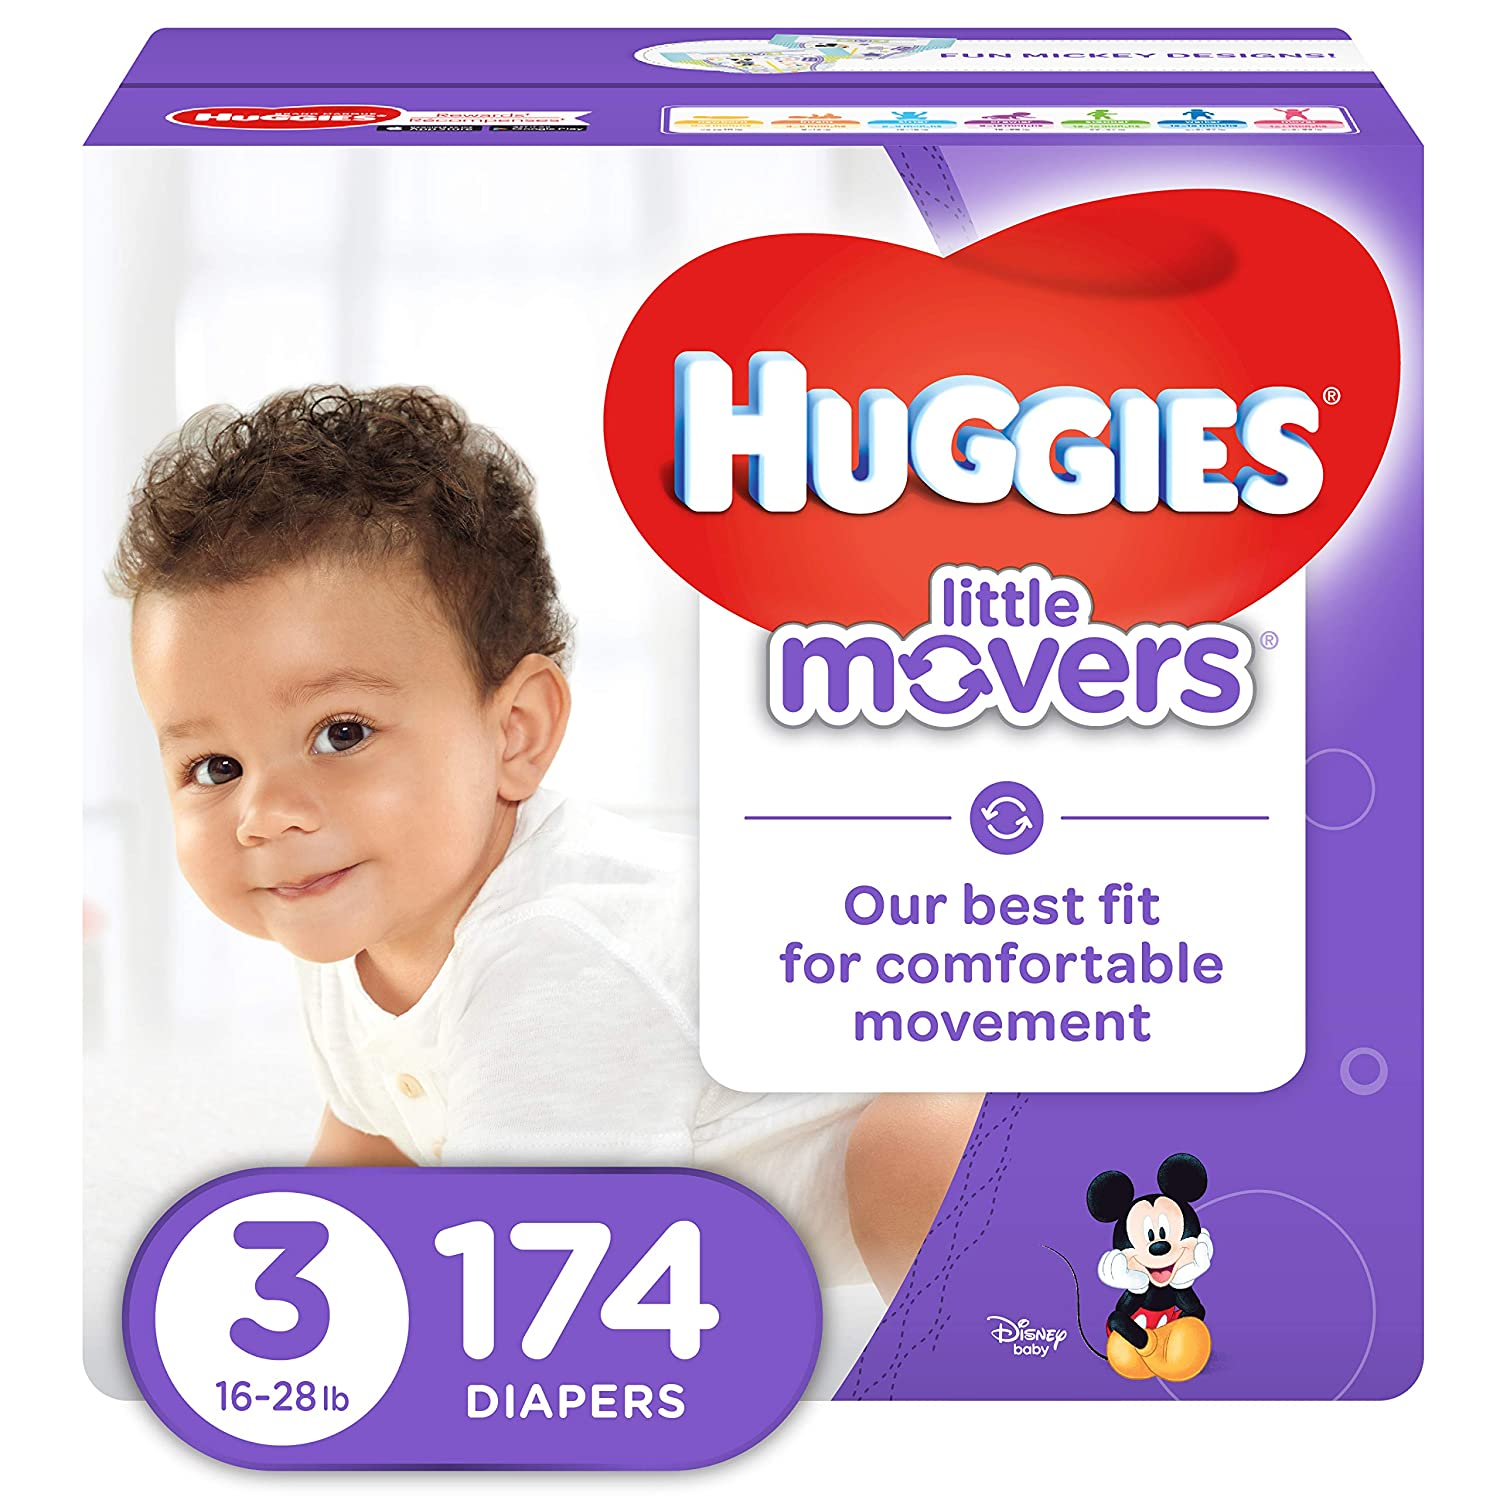 HUGGIES LITTLE MOVERS Diapers, Size 4 (22-37 lb.), 152 Ct., ECONOMY PLUS (Packaging May Vary), Baby Diapers for Active Babies 10036000407621